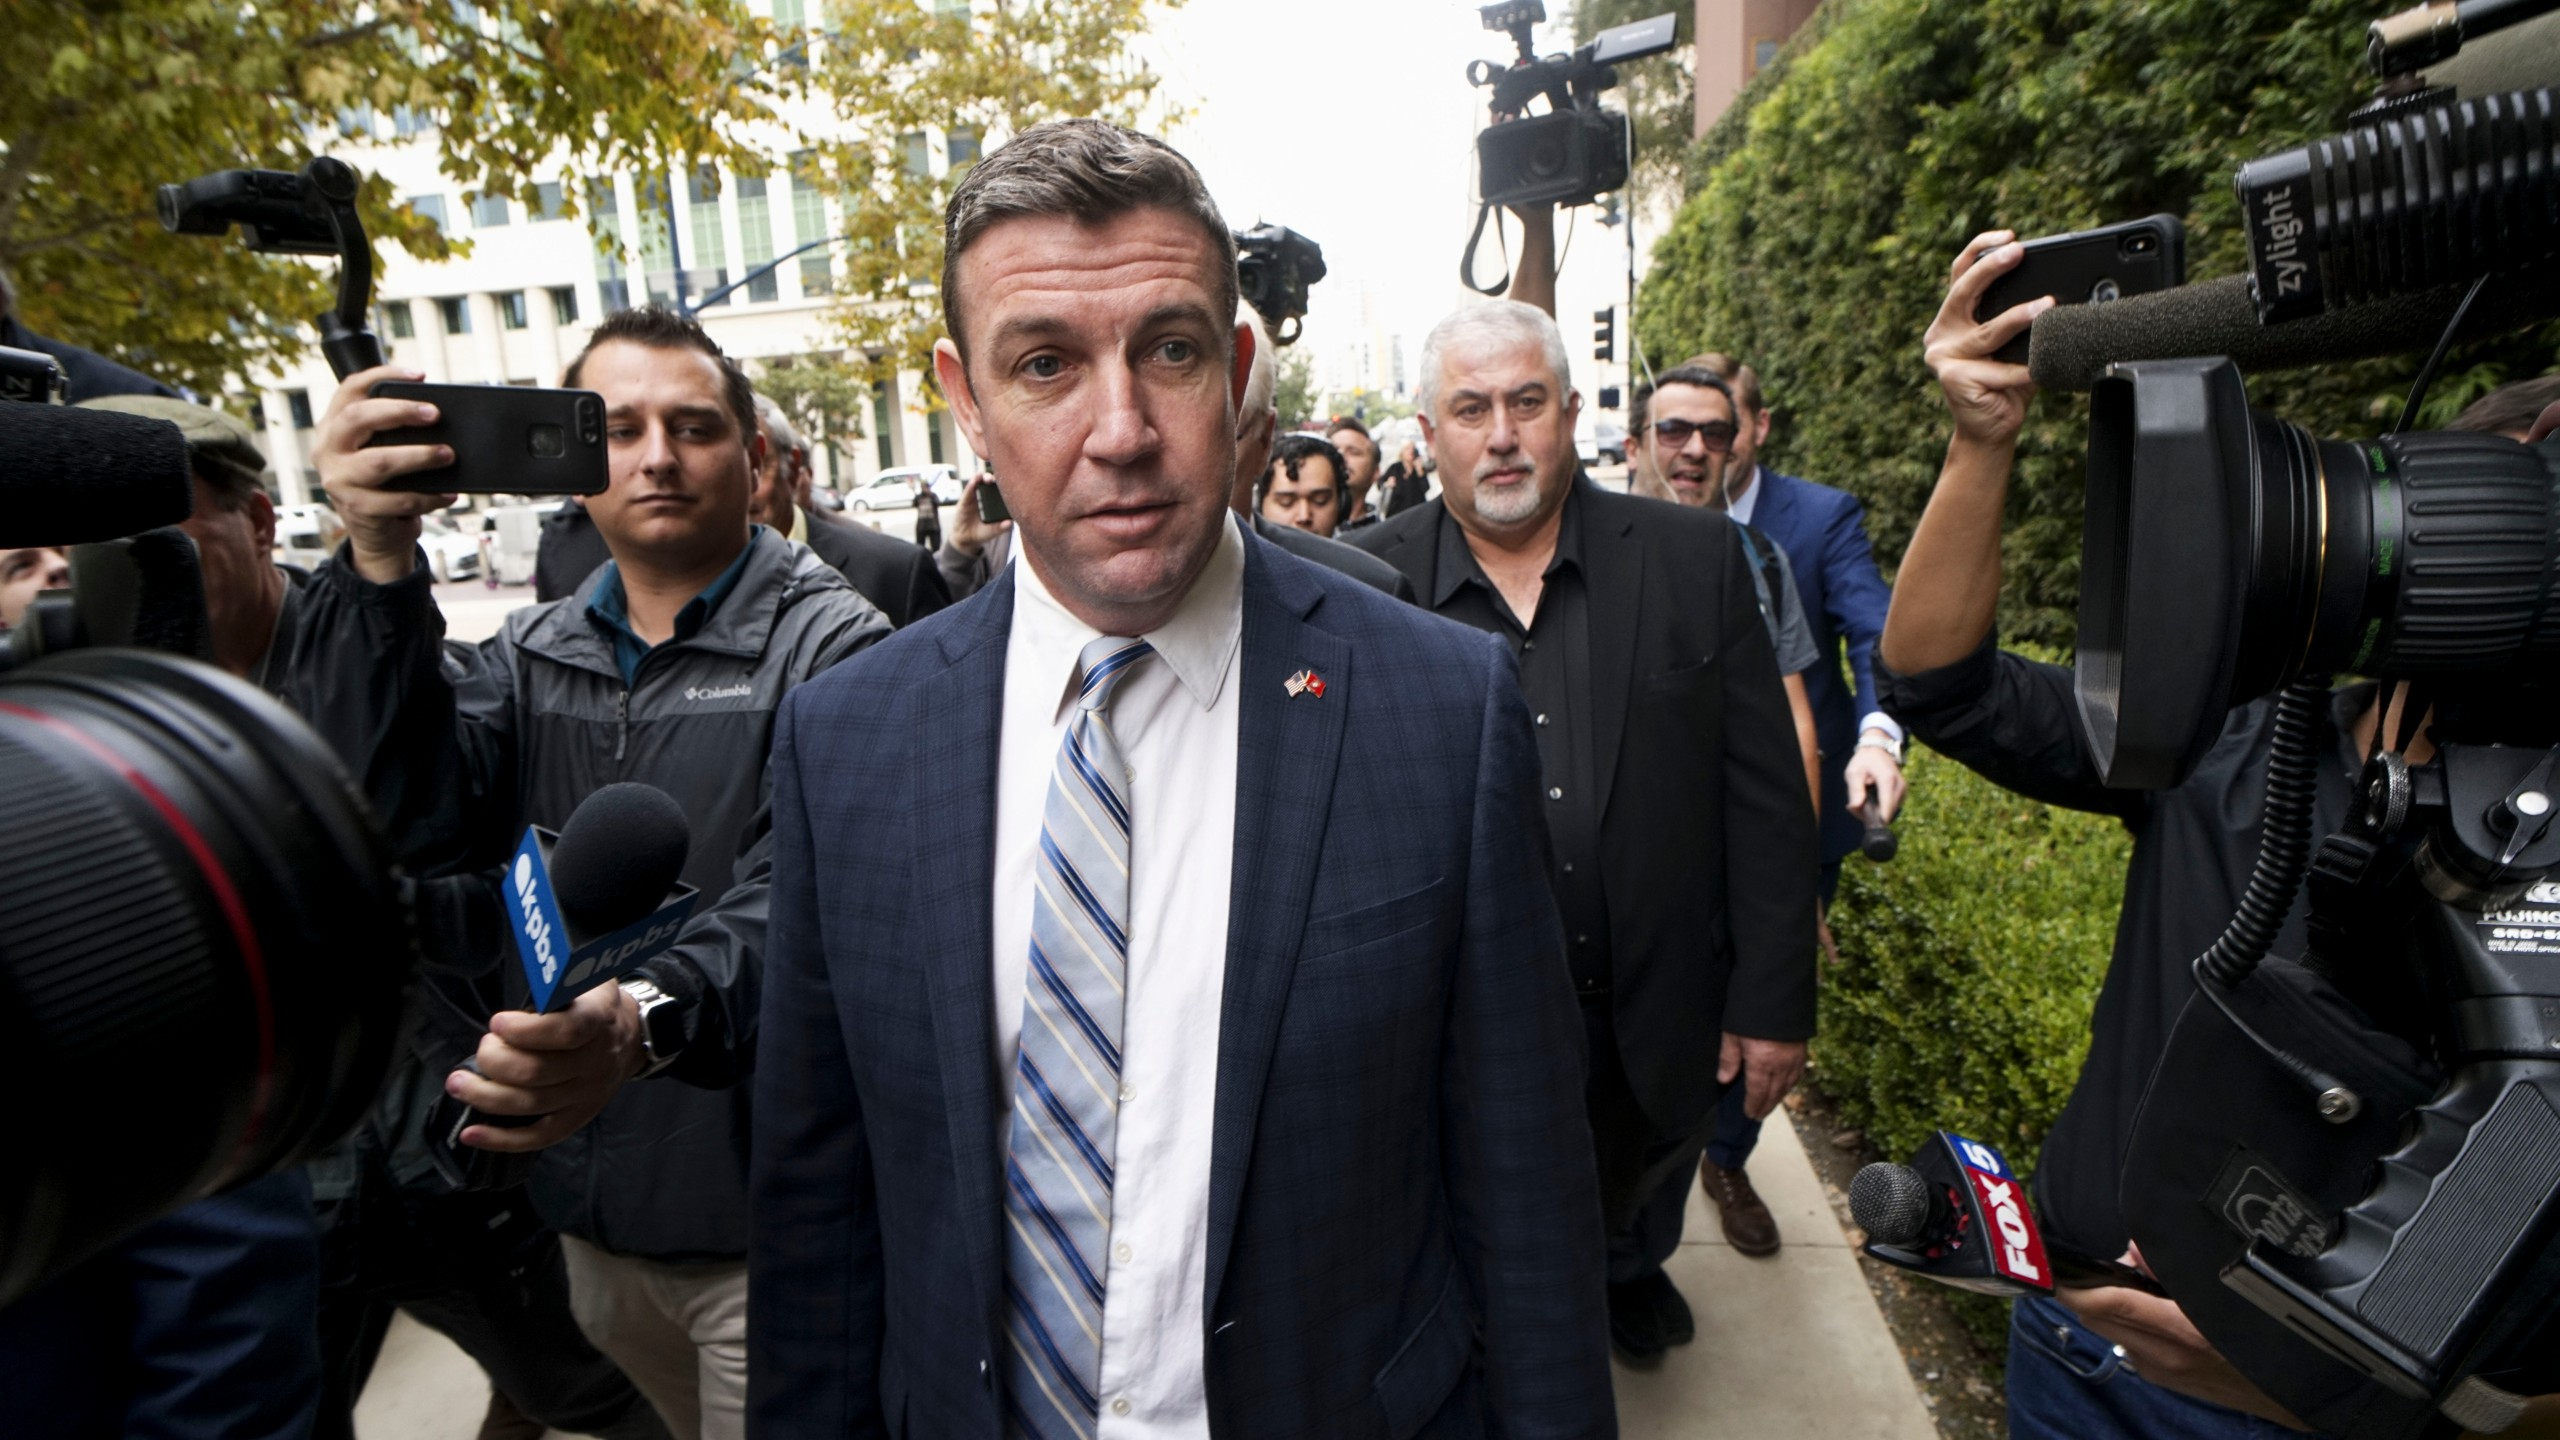 Rep. Duncan Hunter walks into a federal courthouse in San Diego on Dec. 3, 2019. (Credit: Sandy Huffaker / Getty Images)